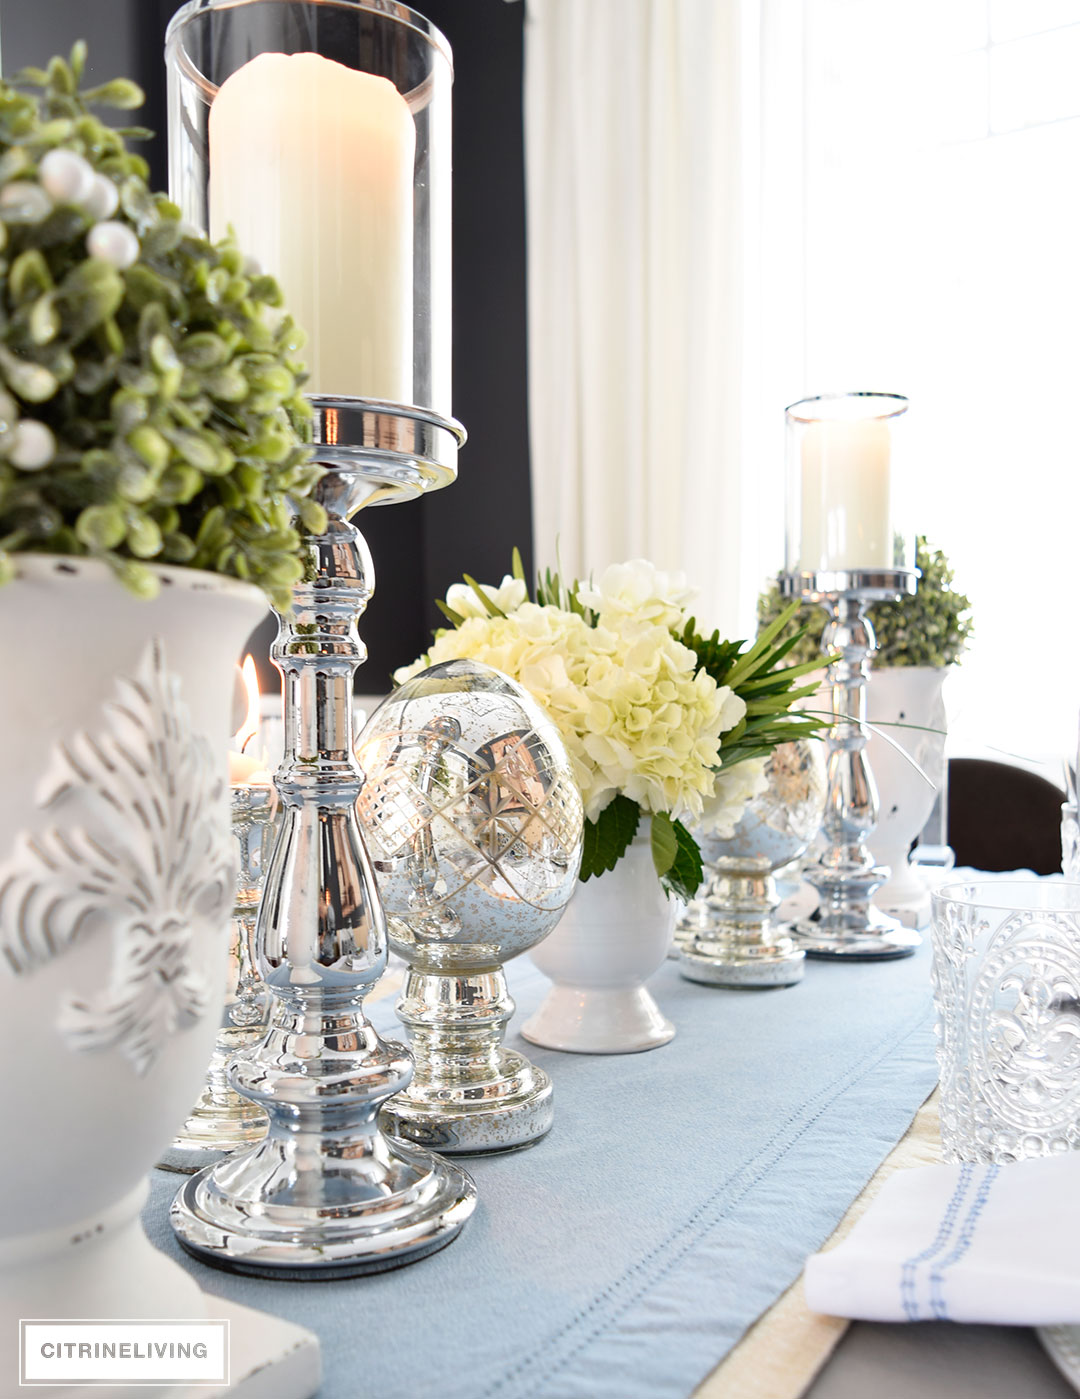 Silver candle holders, mercury glass accessories, topiaries and a white hydrangea arrangement are elegant and sophisticated for Easter and Spring tablescapes.